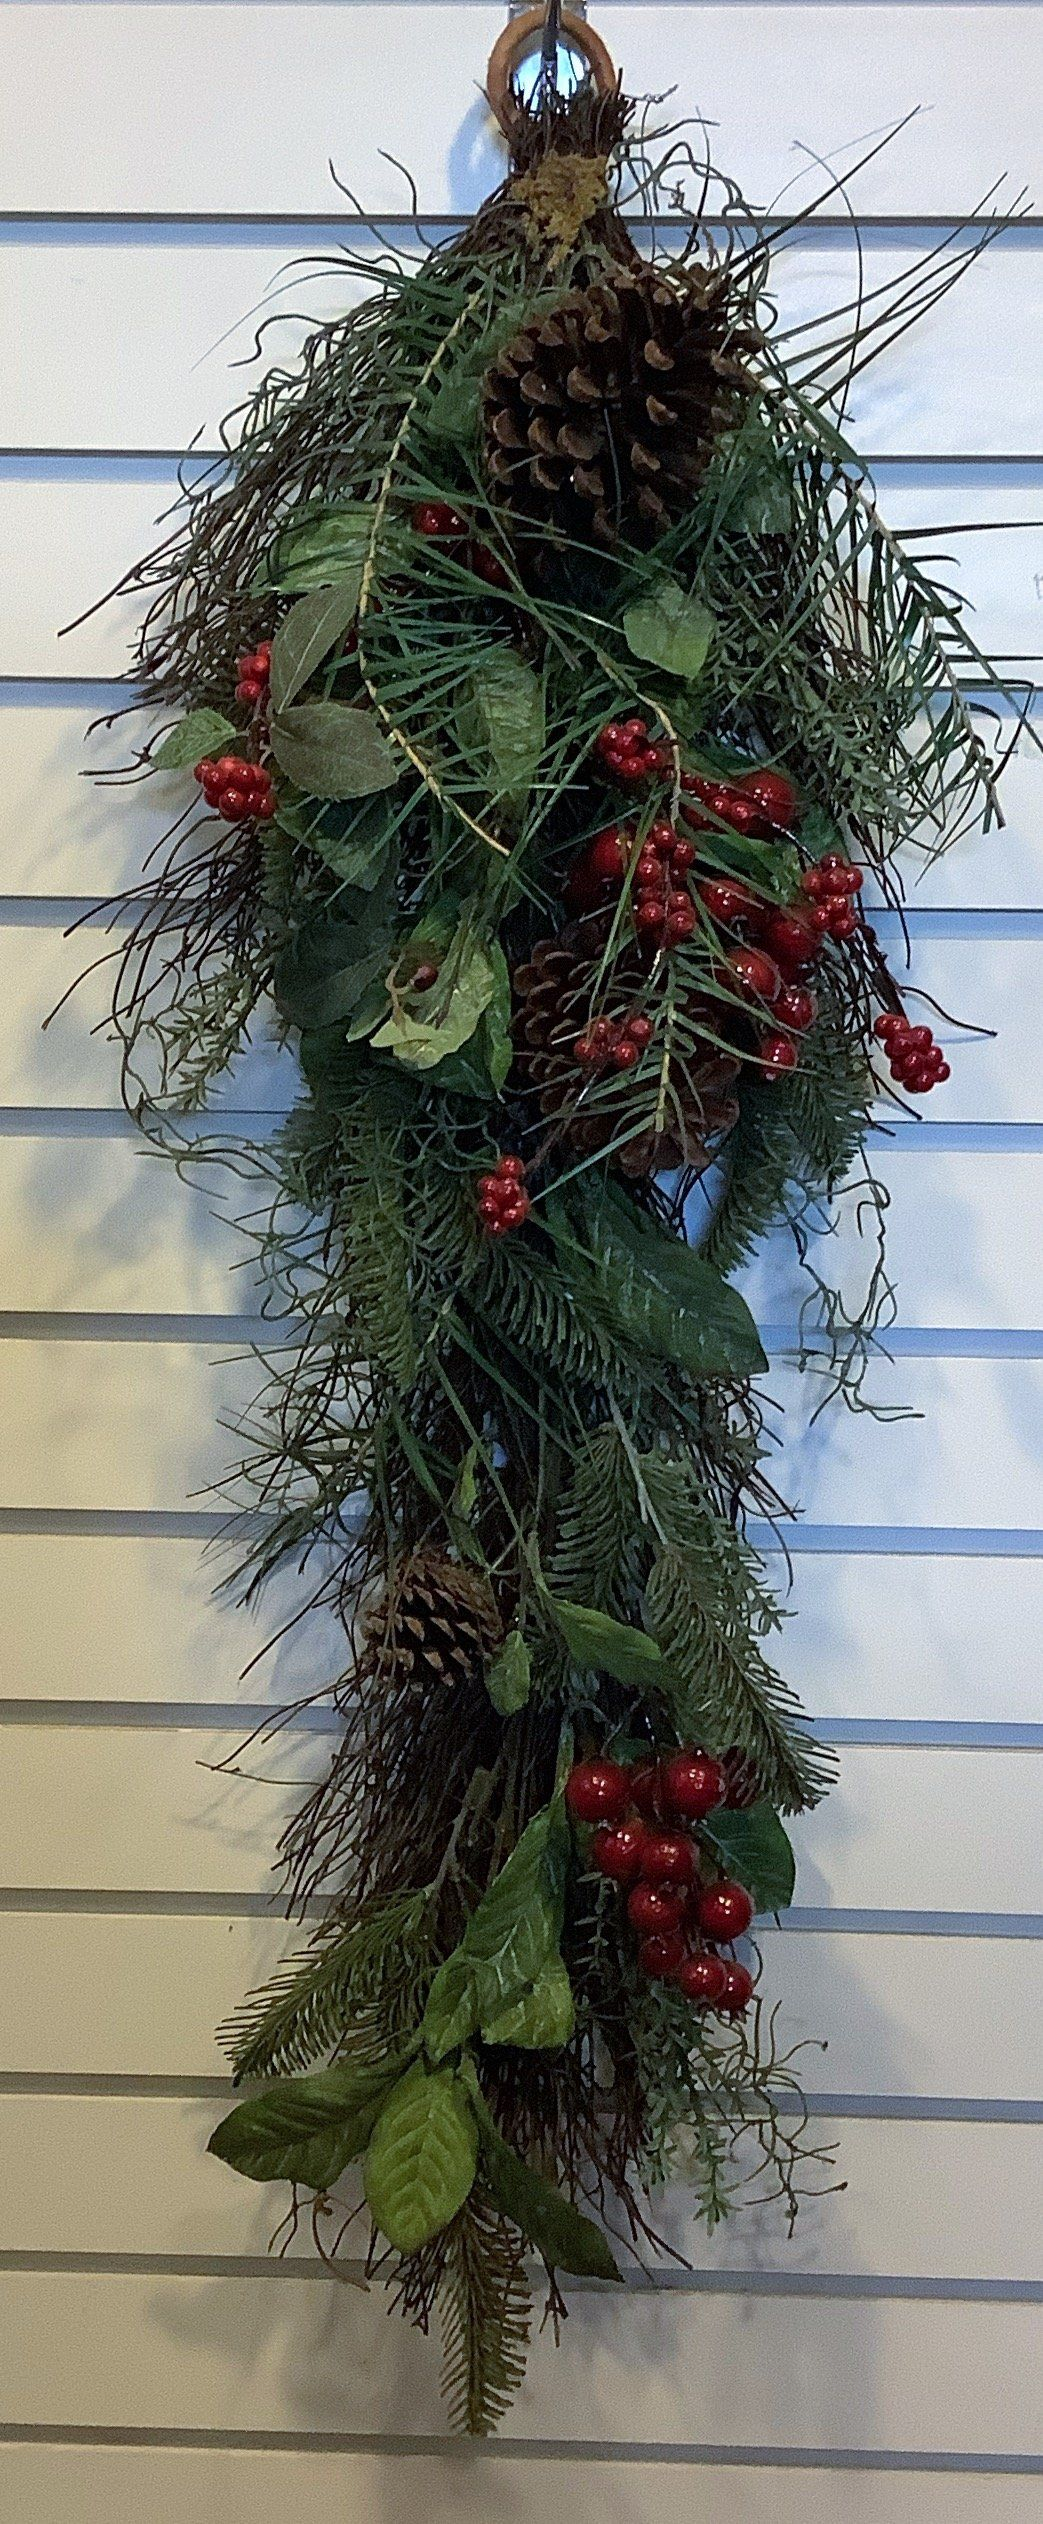 Greenery Wall Decor with Pine Cones/Red Berries 31